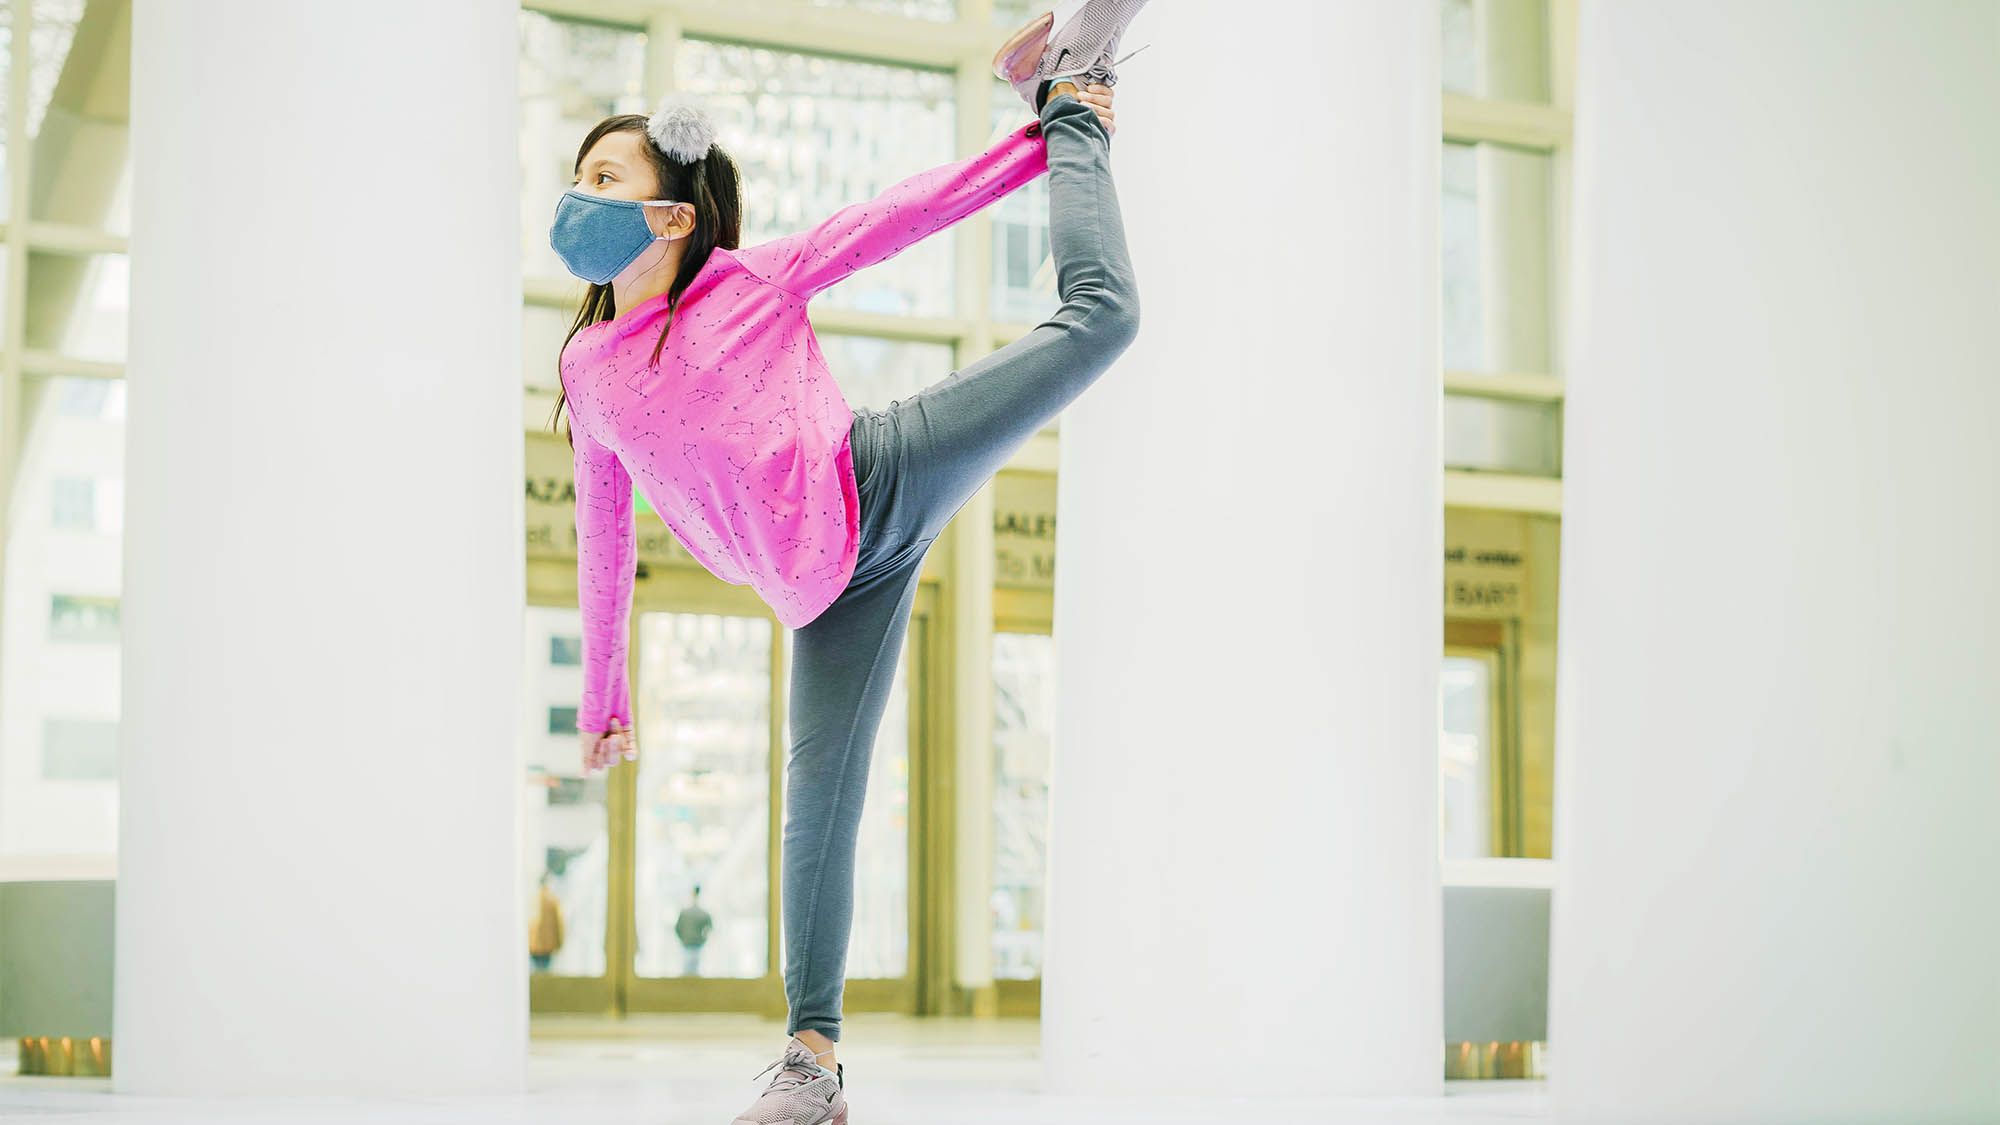 Masked girl dancing with pink shirt and grey pants